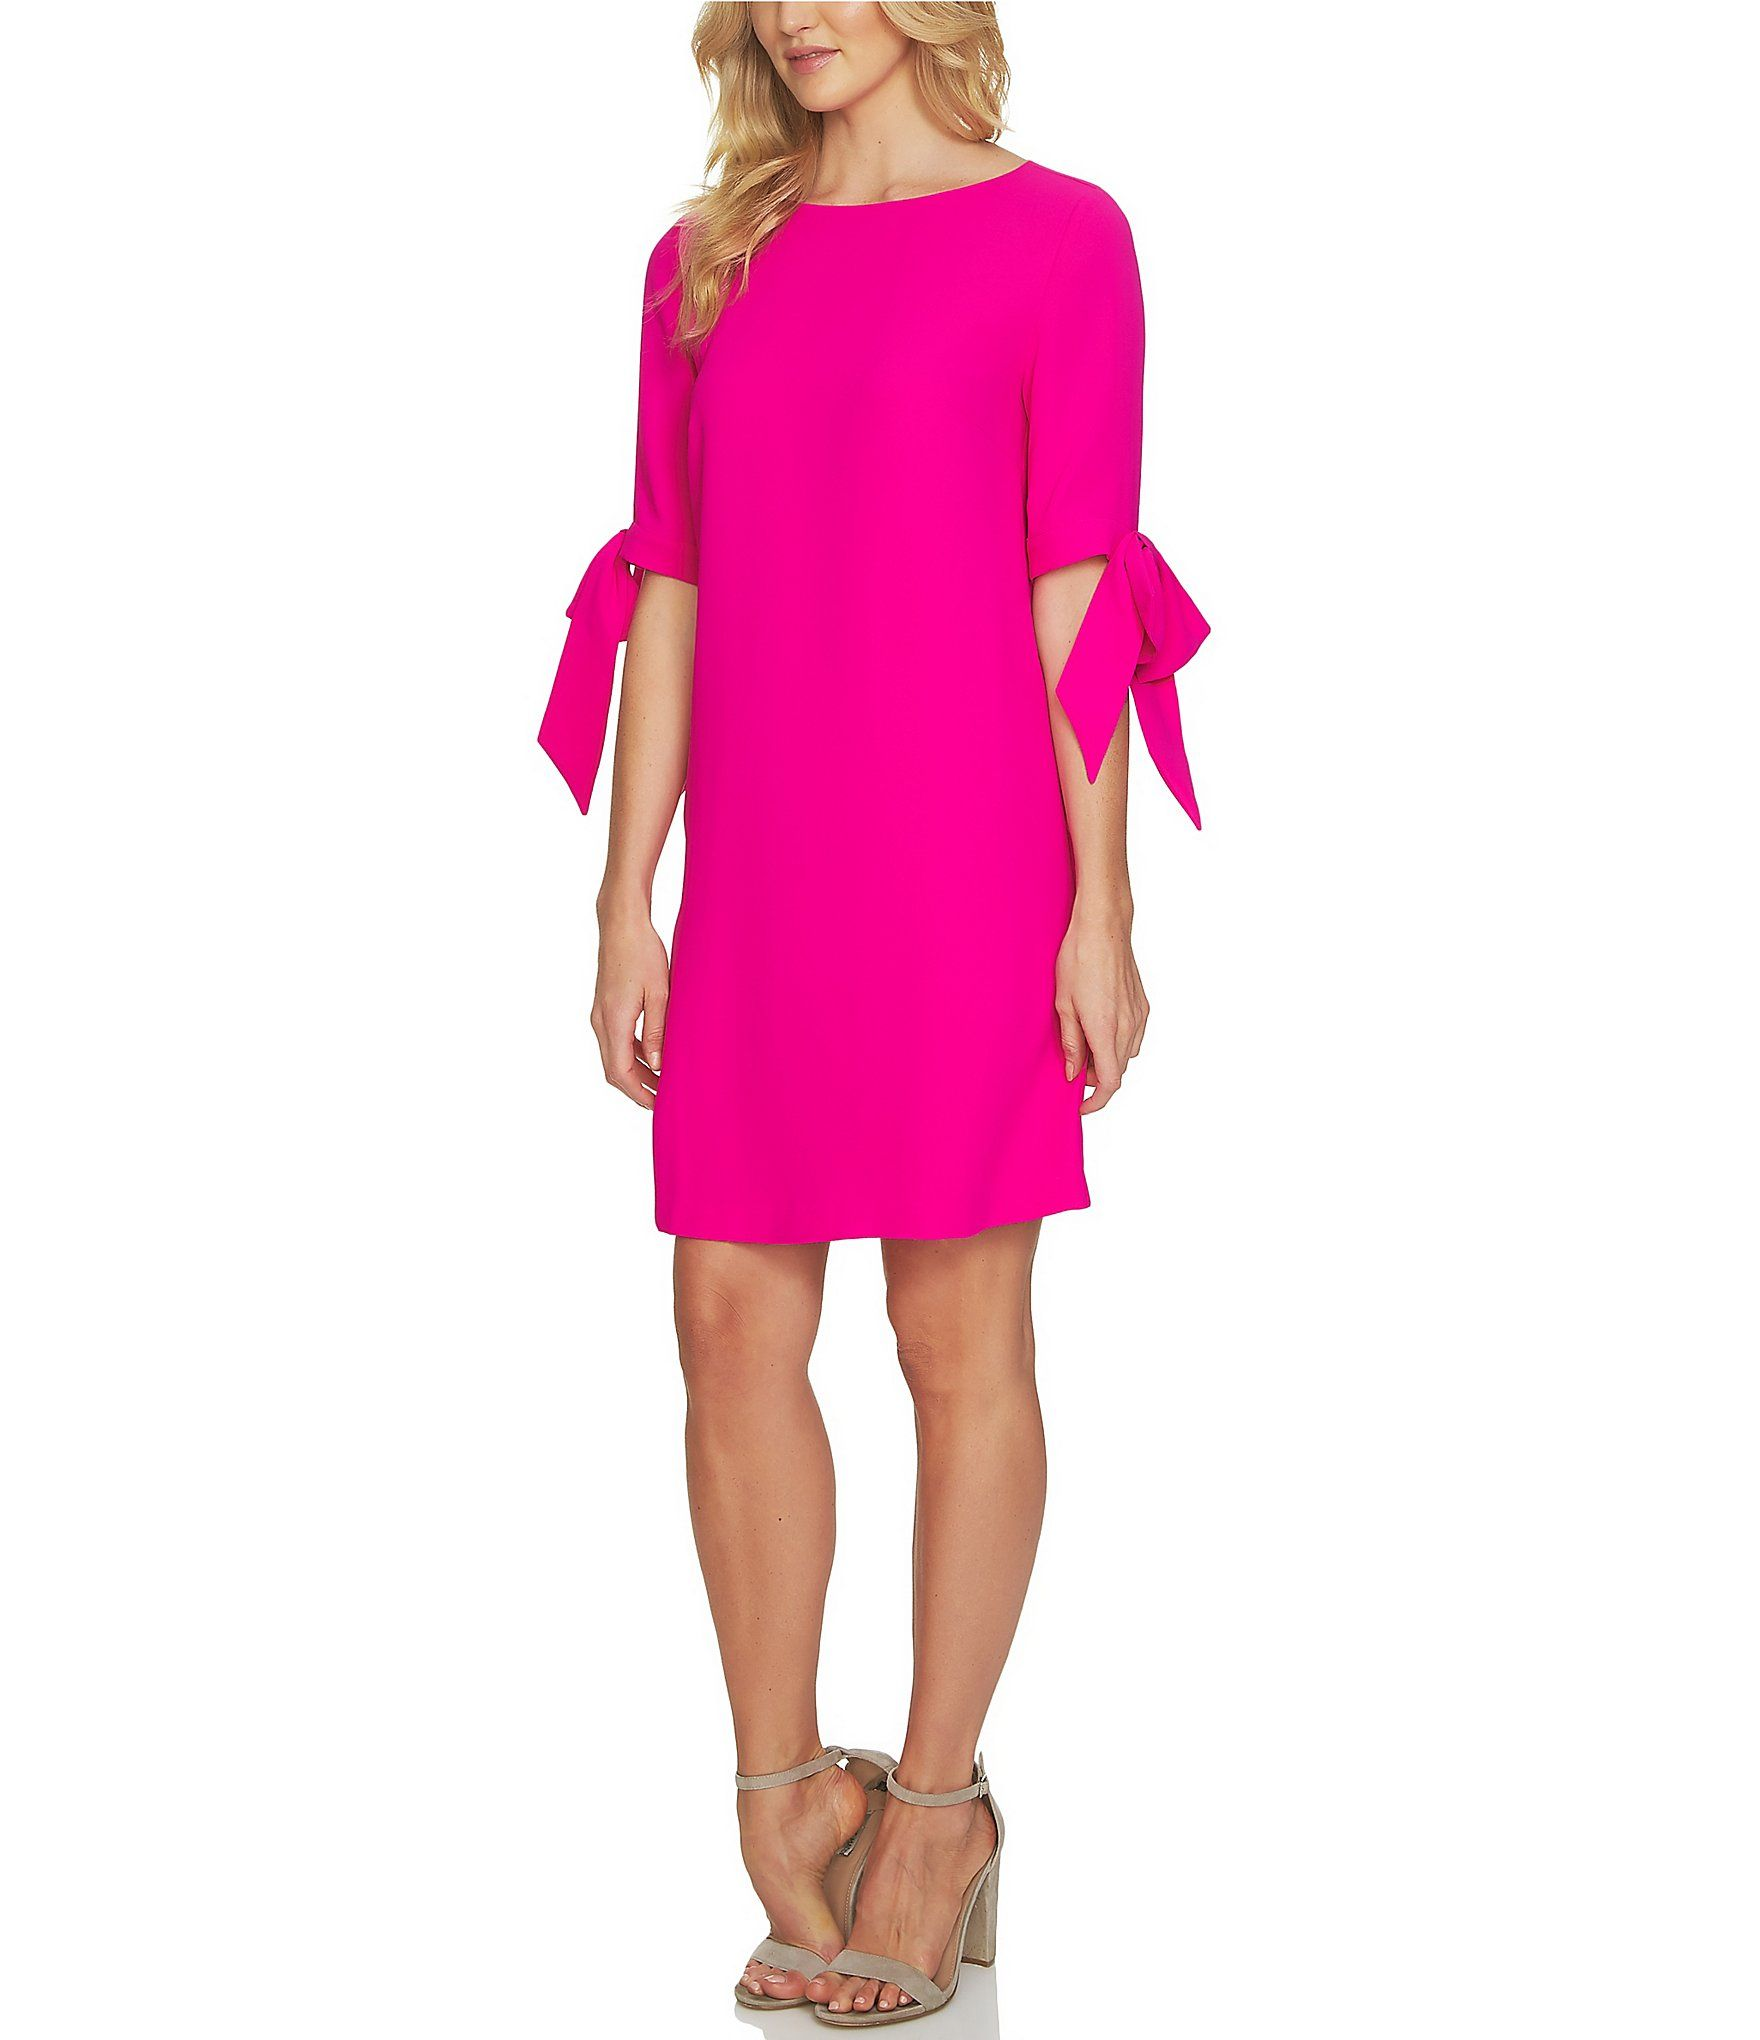 30c36ac3453 Shop for CeCe Bow Tie Sleeve Shift Dress at Dillards.com. Visit  Dillards.com to find clothing